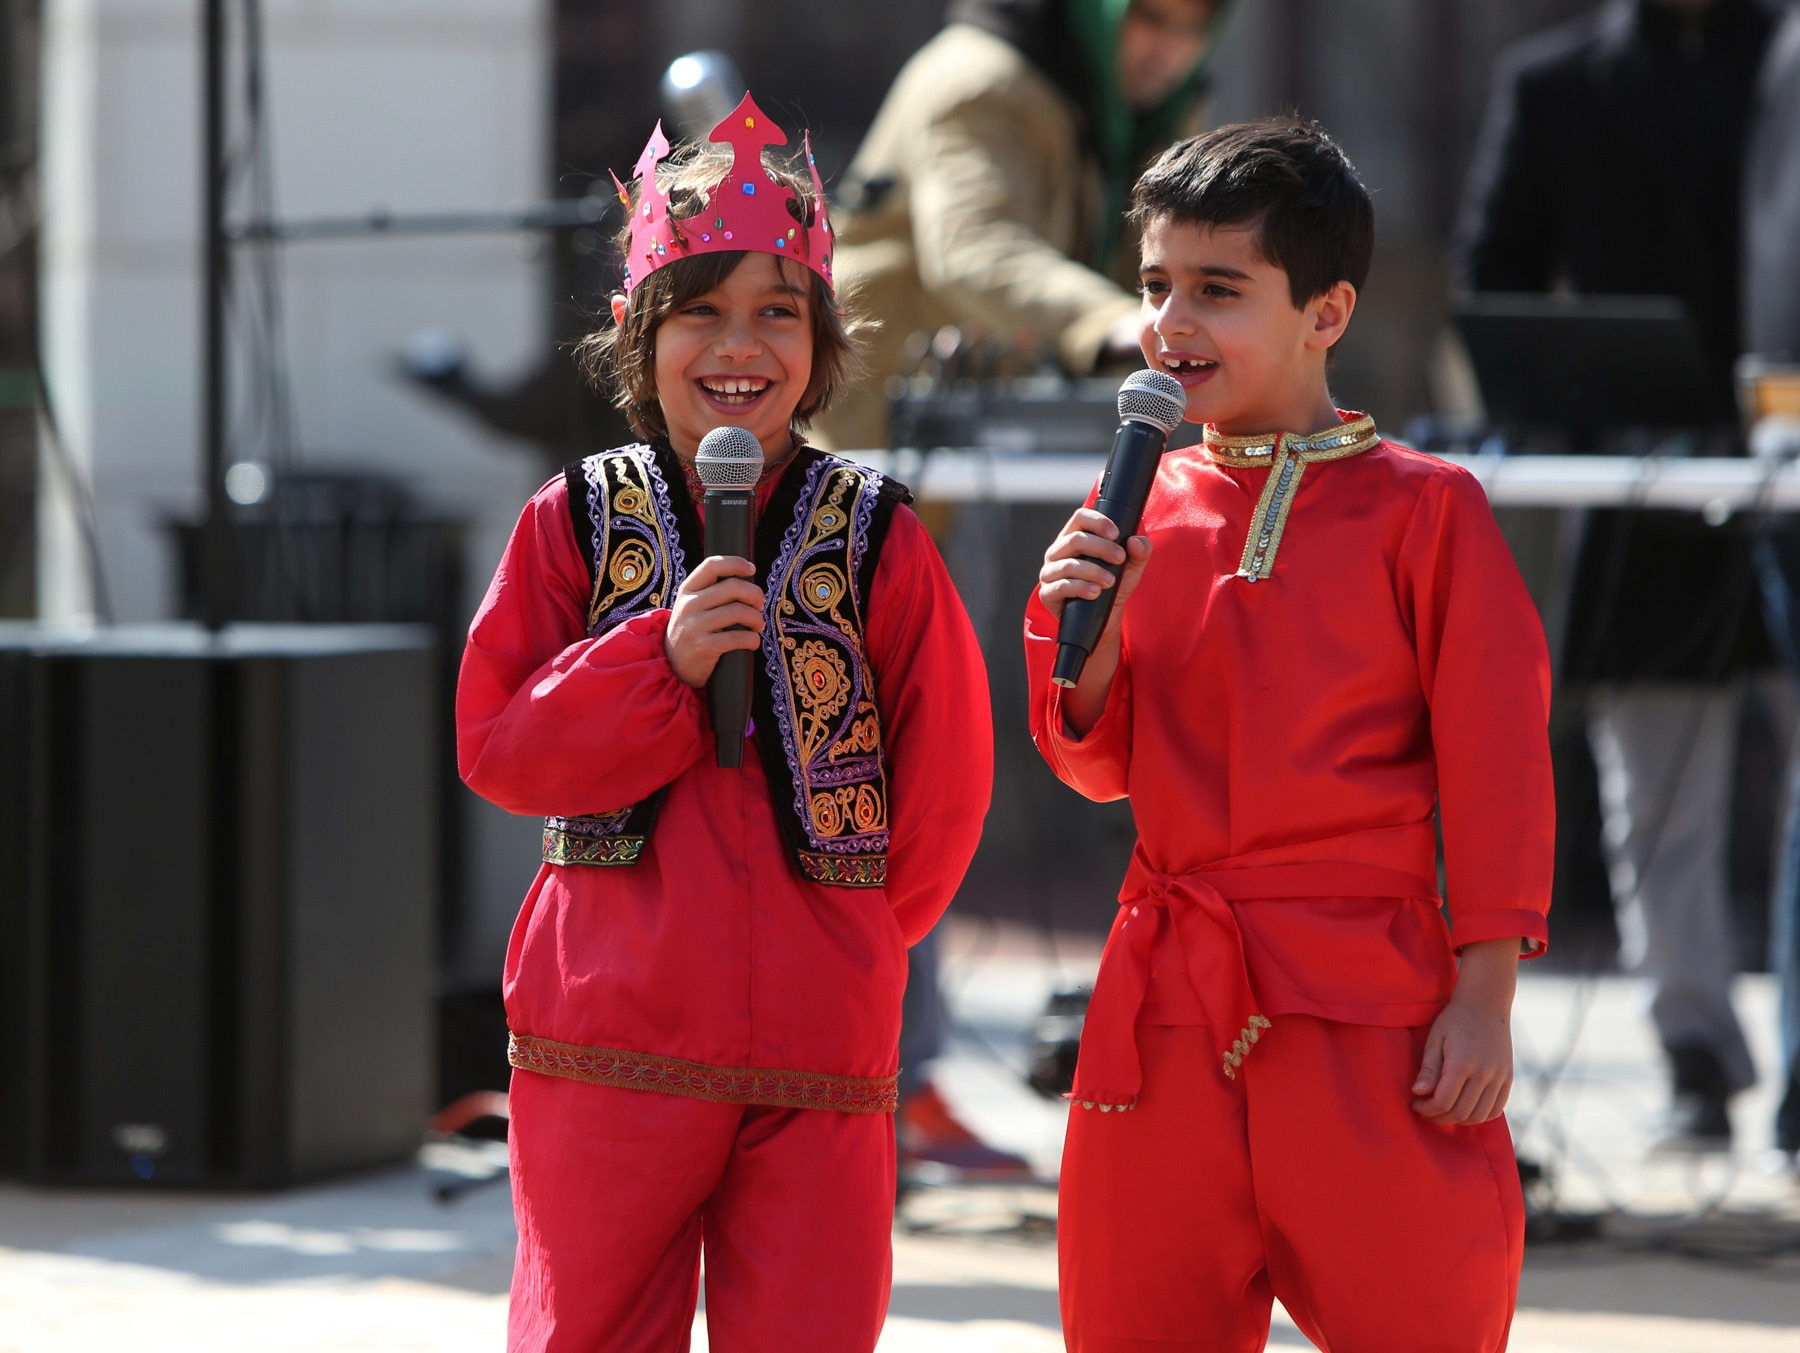 Two boys in red costumes speaking into microphones on a stage (© Ali Khaligh)